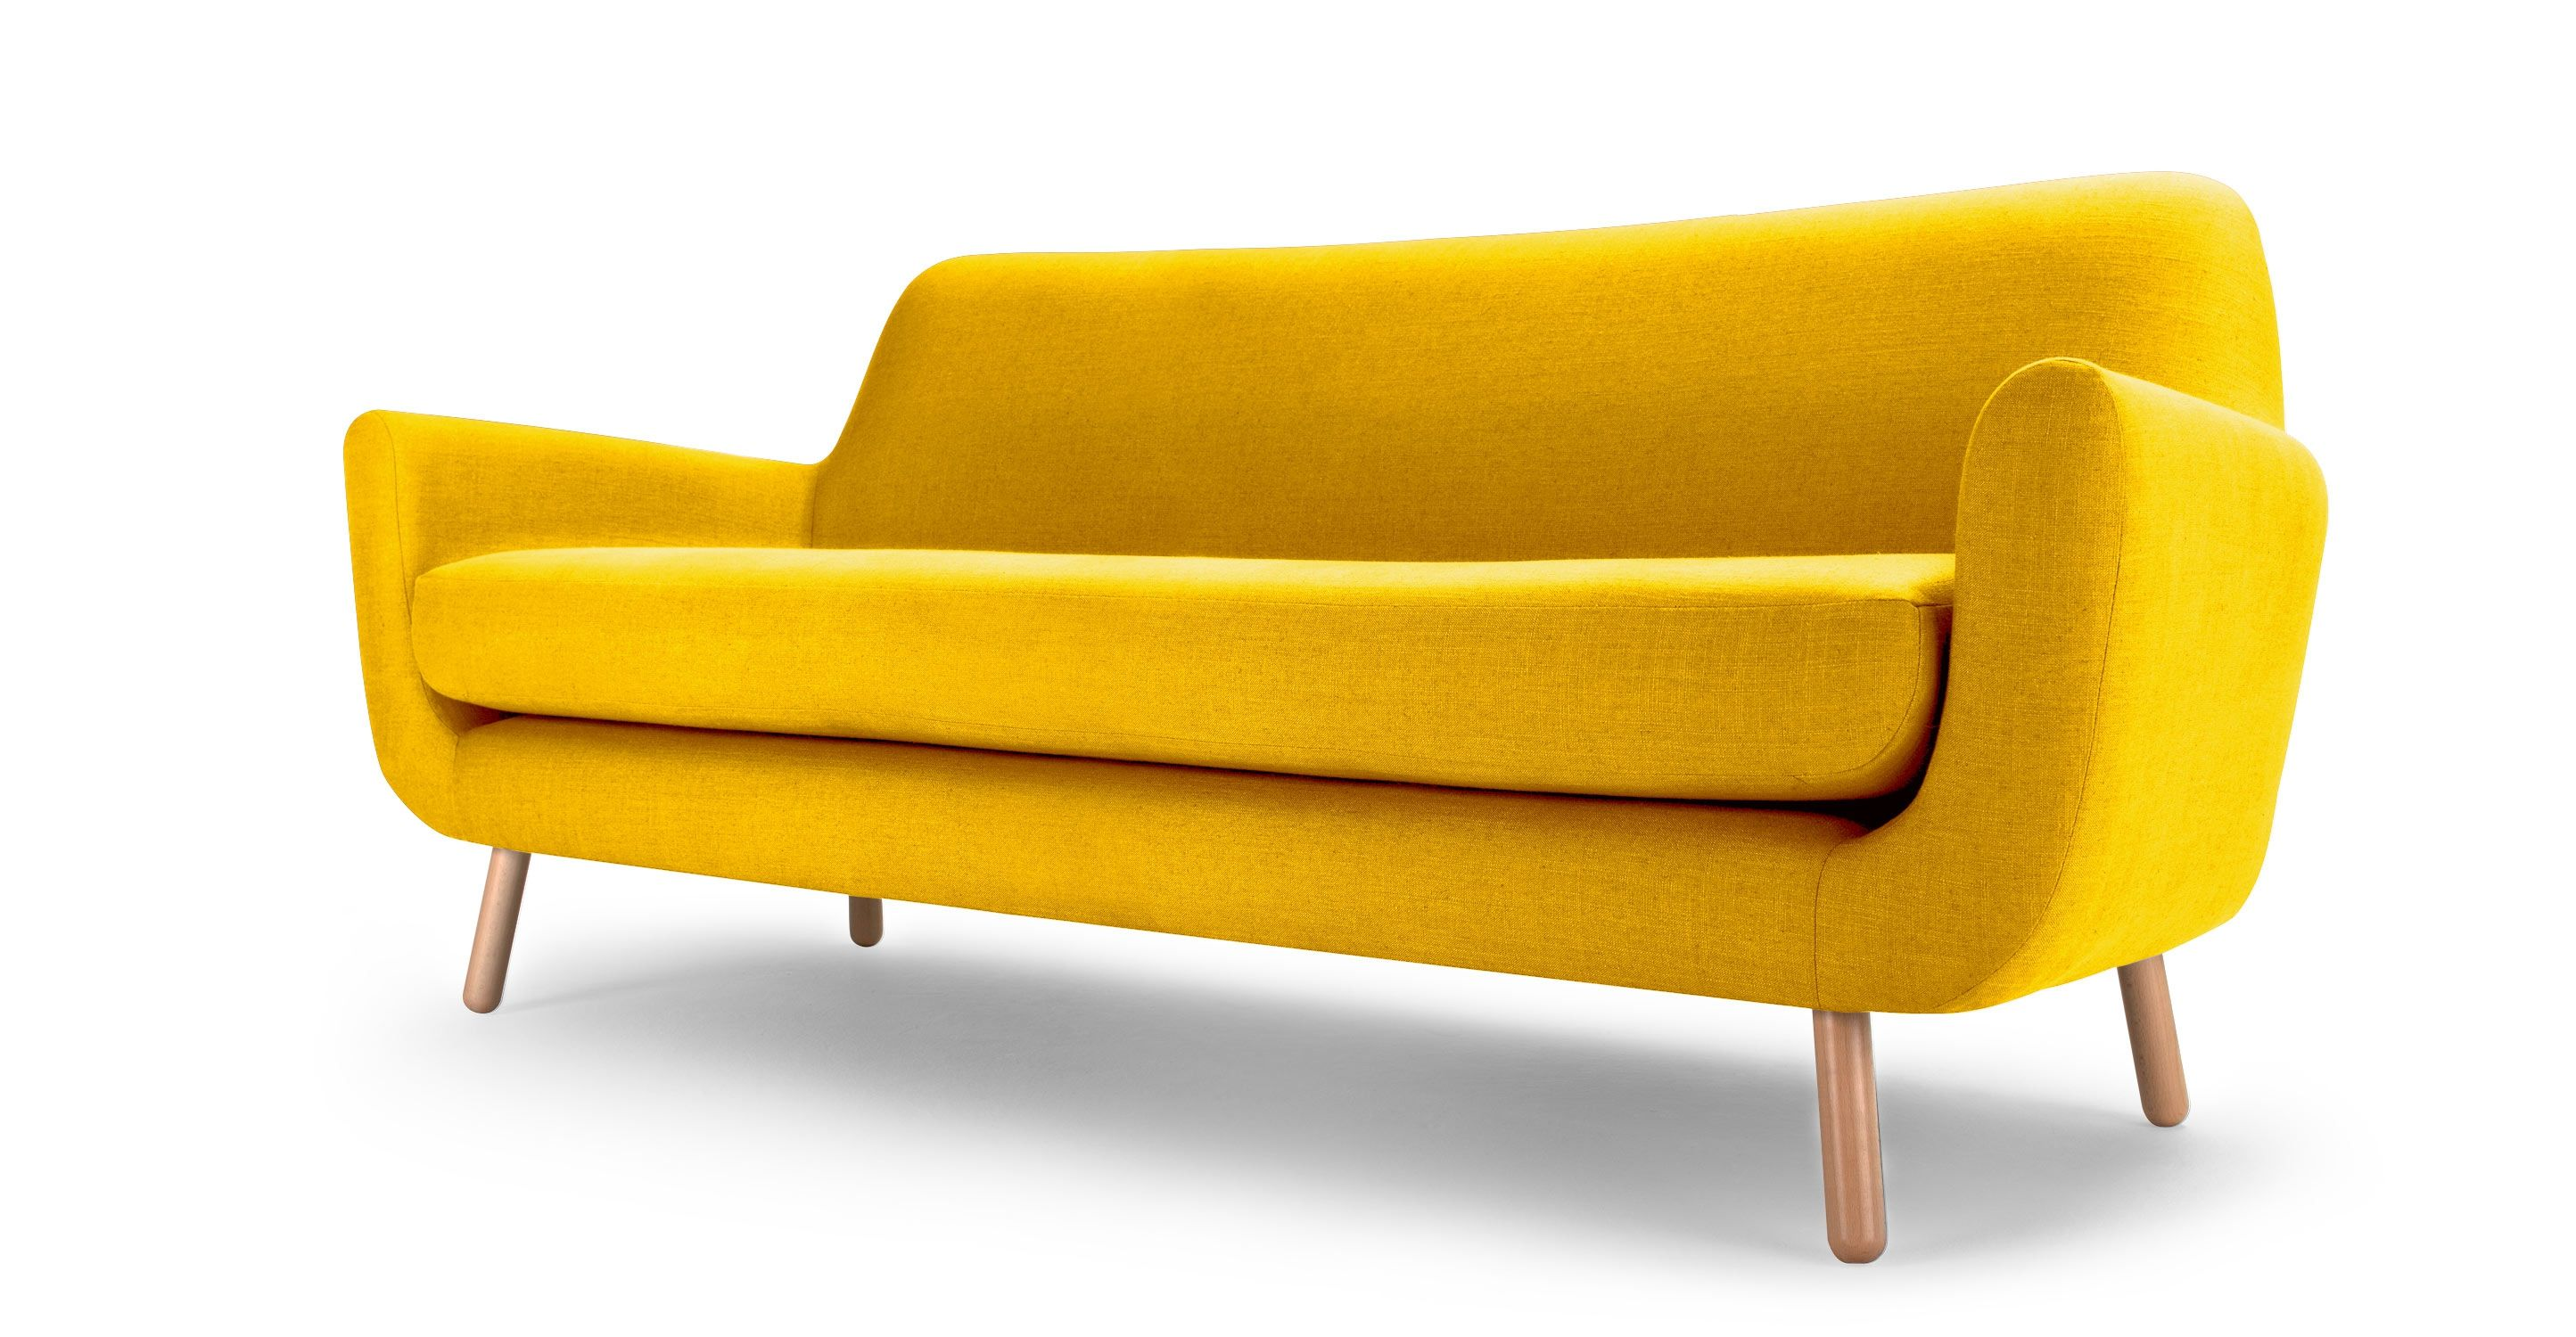 James Harrison Chair Black Plastic Folding Chairs Jonah 3 Seater Sofa In Dandelion Yellow Made Sofas